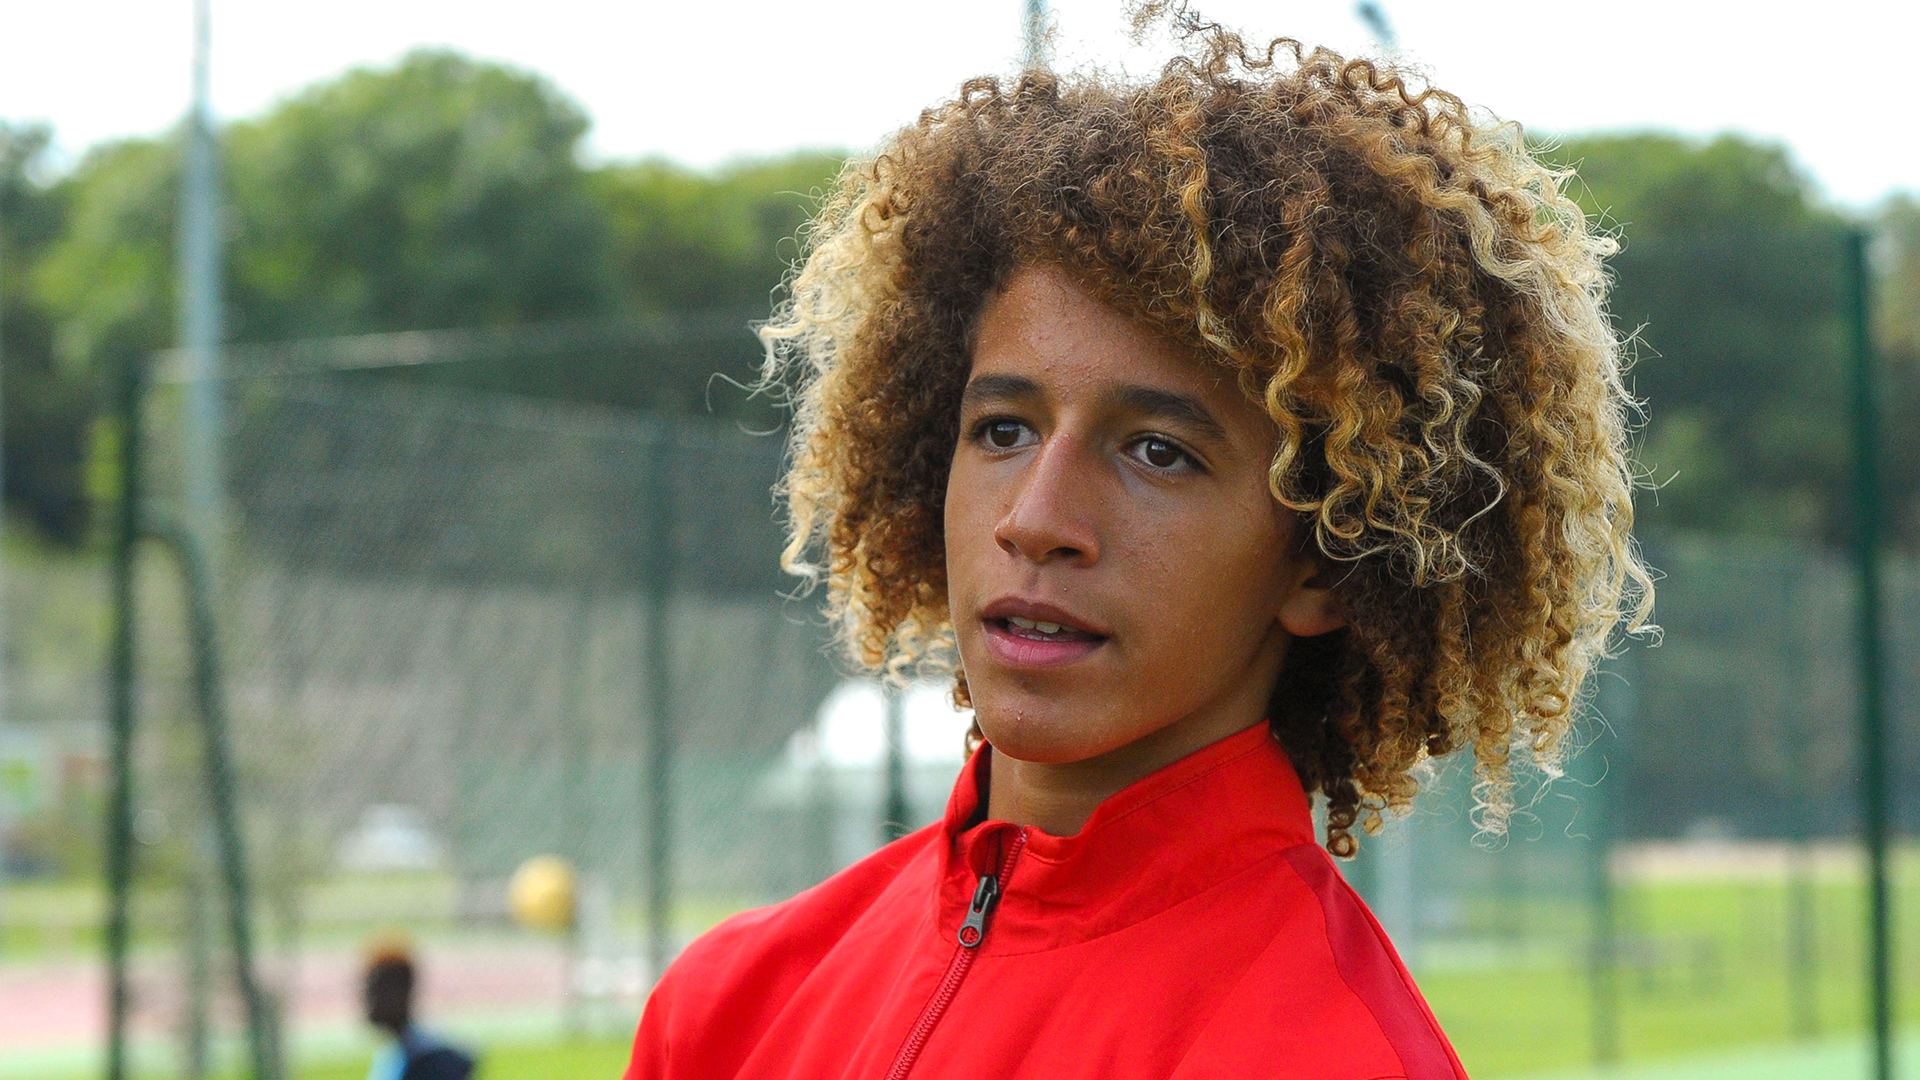 Manchester United sign highly-rated teenager Hannibal Mejbri from AS Monaco